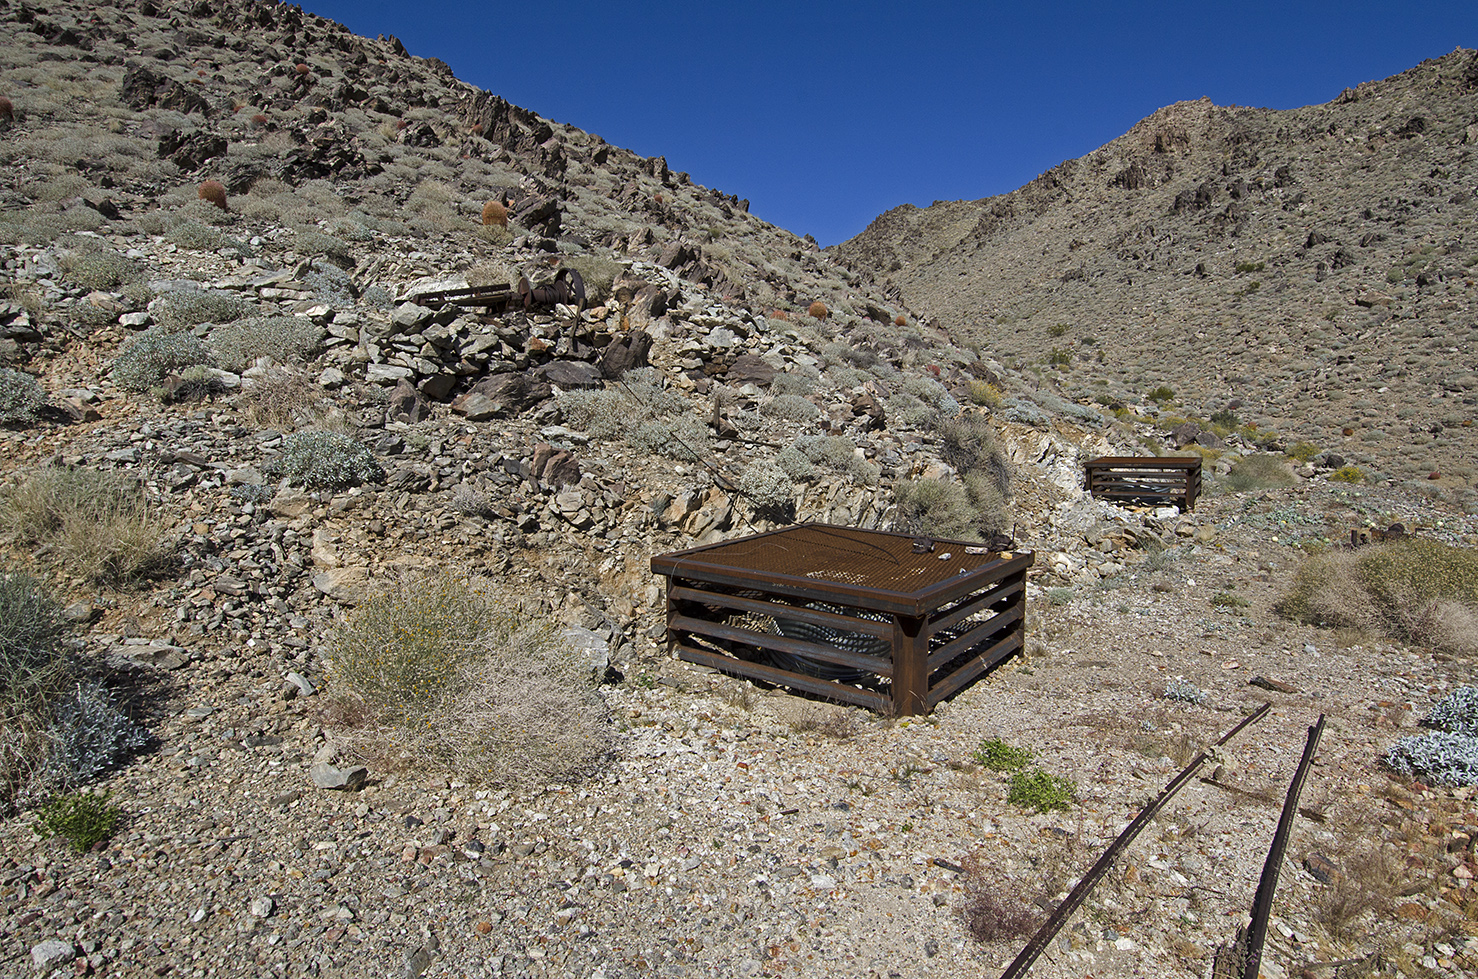 Covered mine shafts.